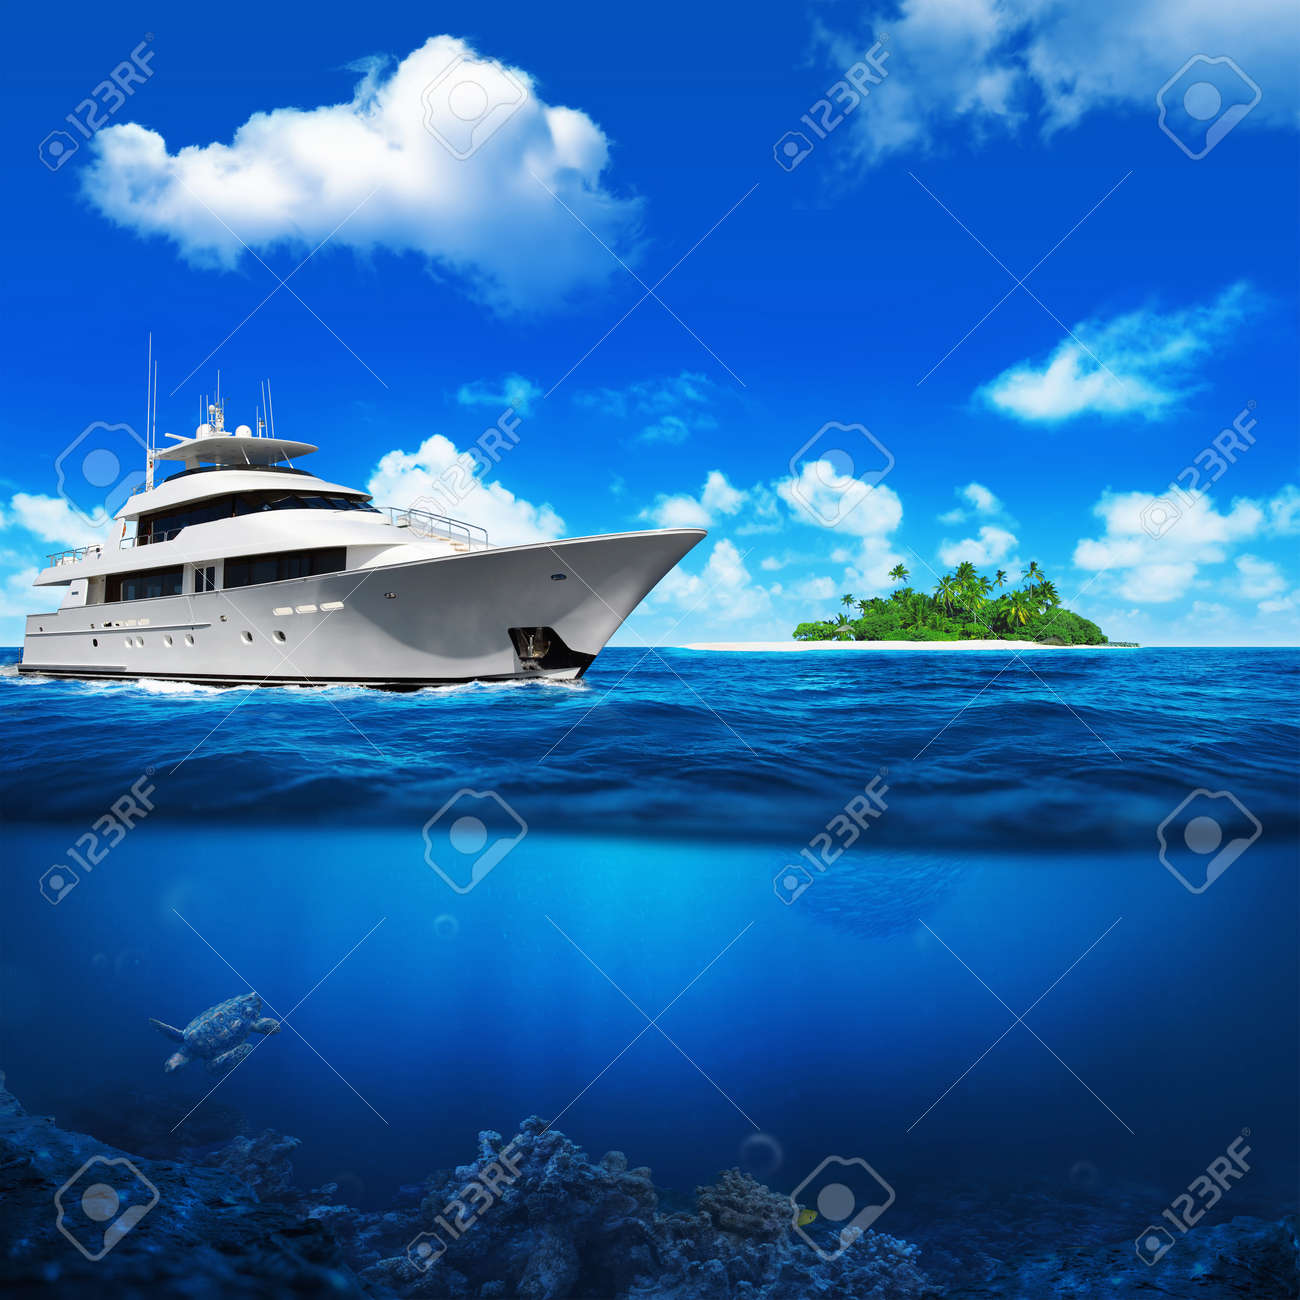 White yacht in the sea. Island with palm trees on the horizon. Turtle under water. - 44054010